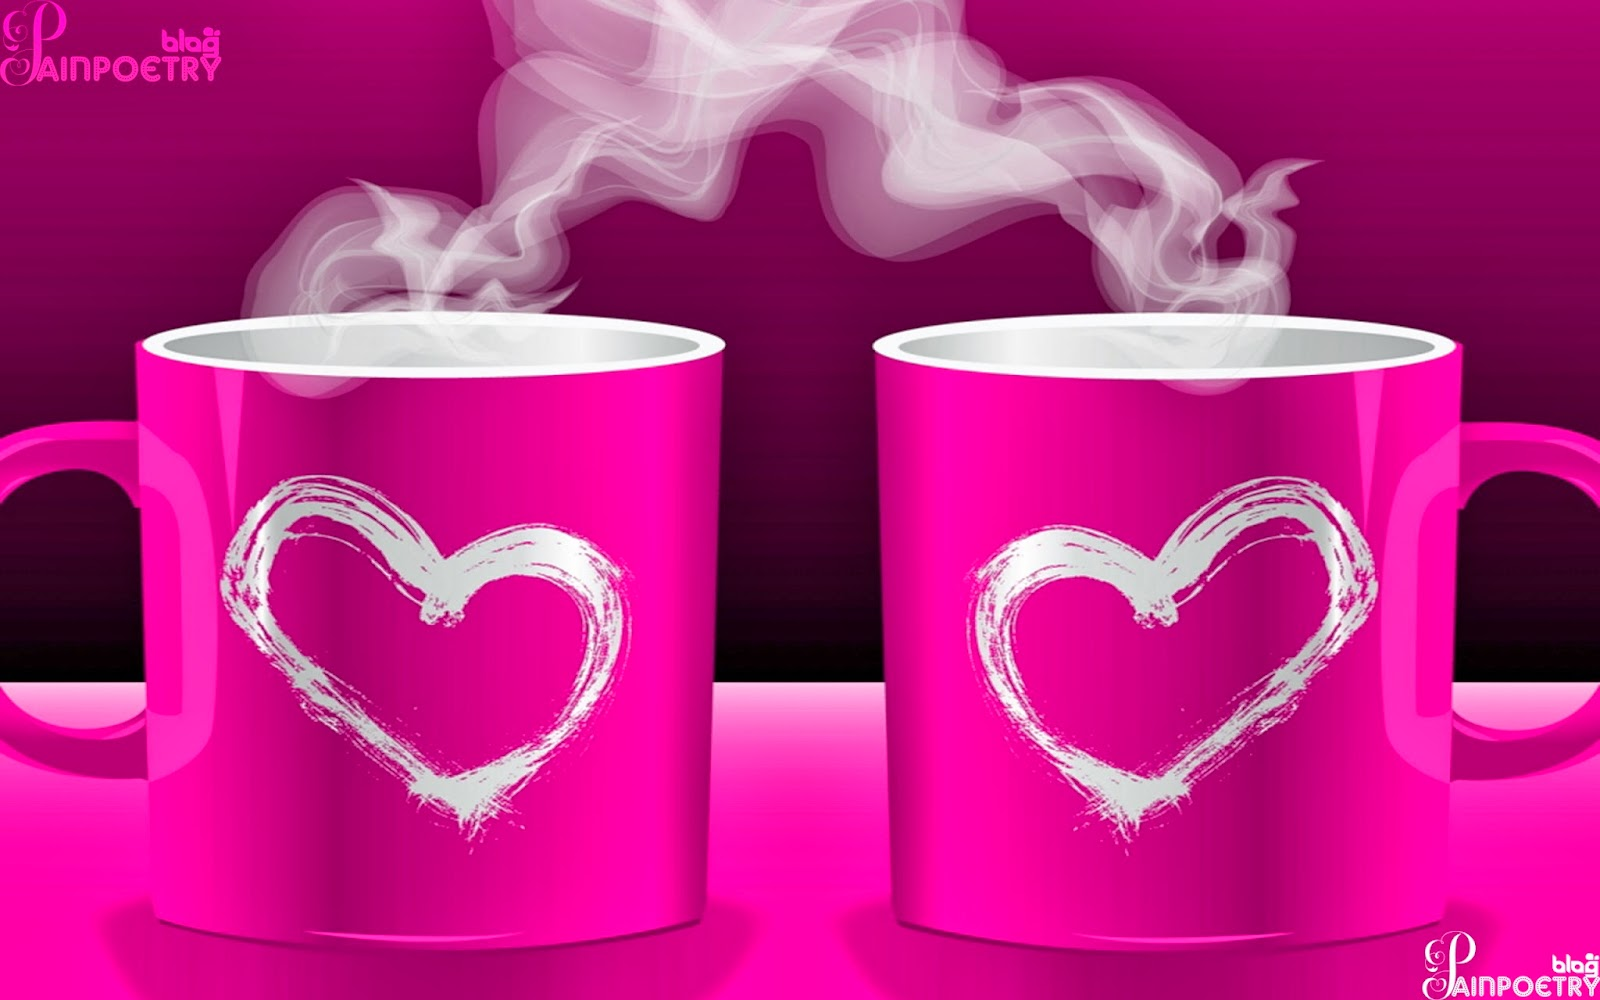 Love-Wishes-Wallpaper-Two-Love-Cups-Image-Wide